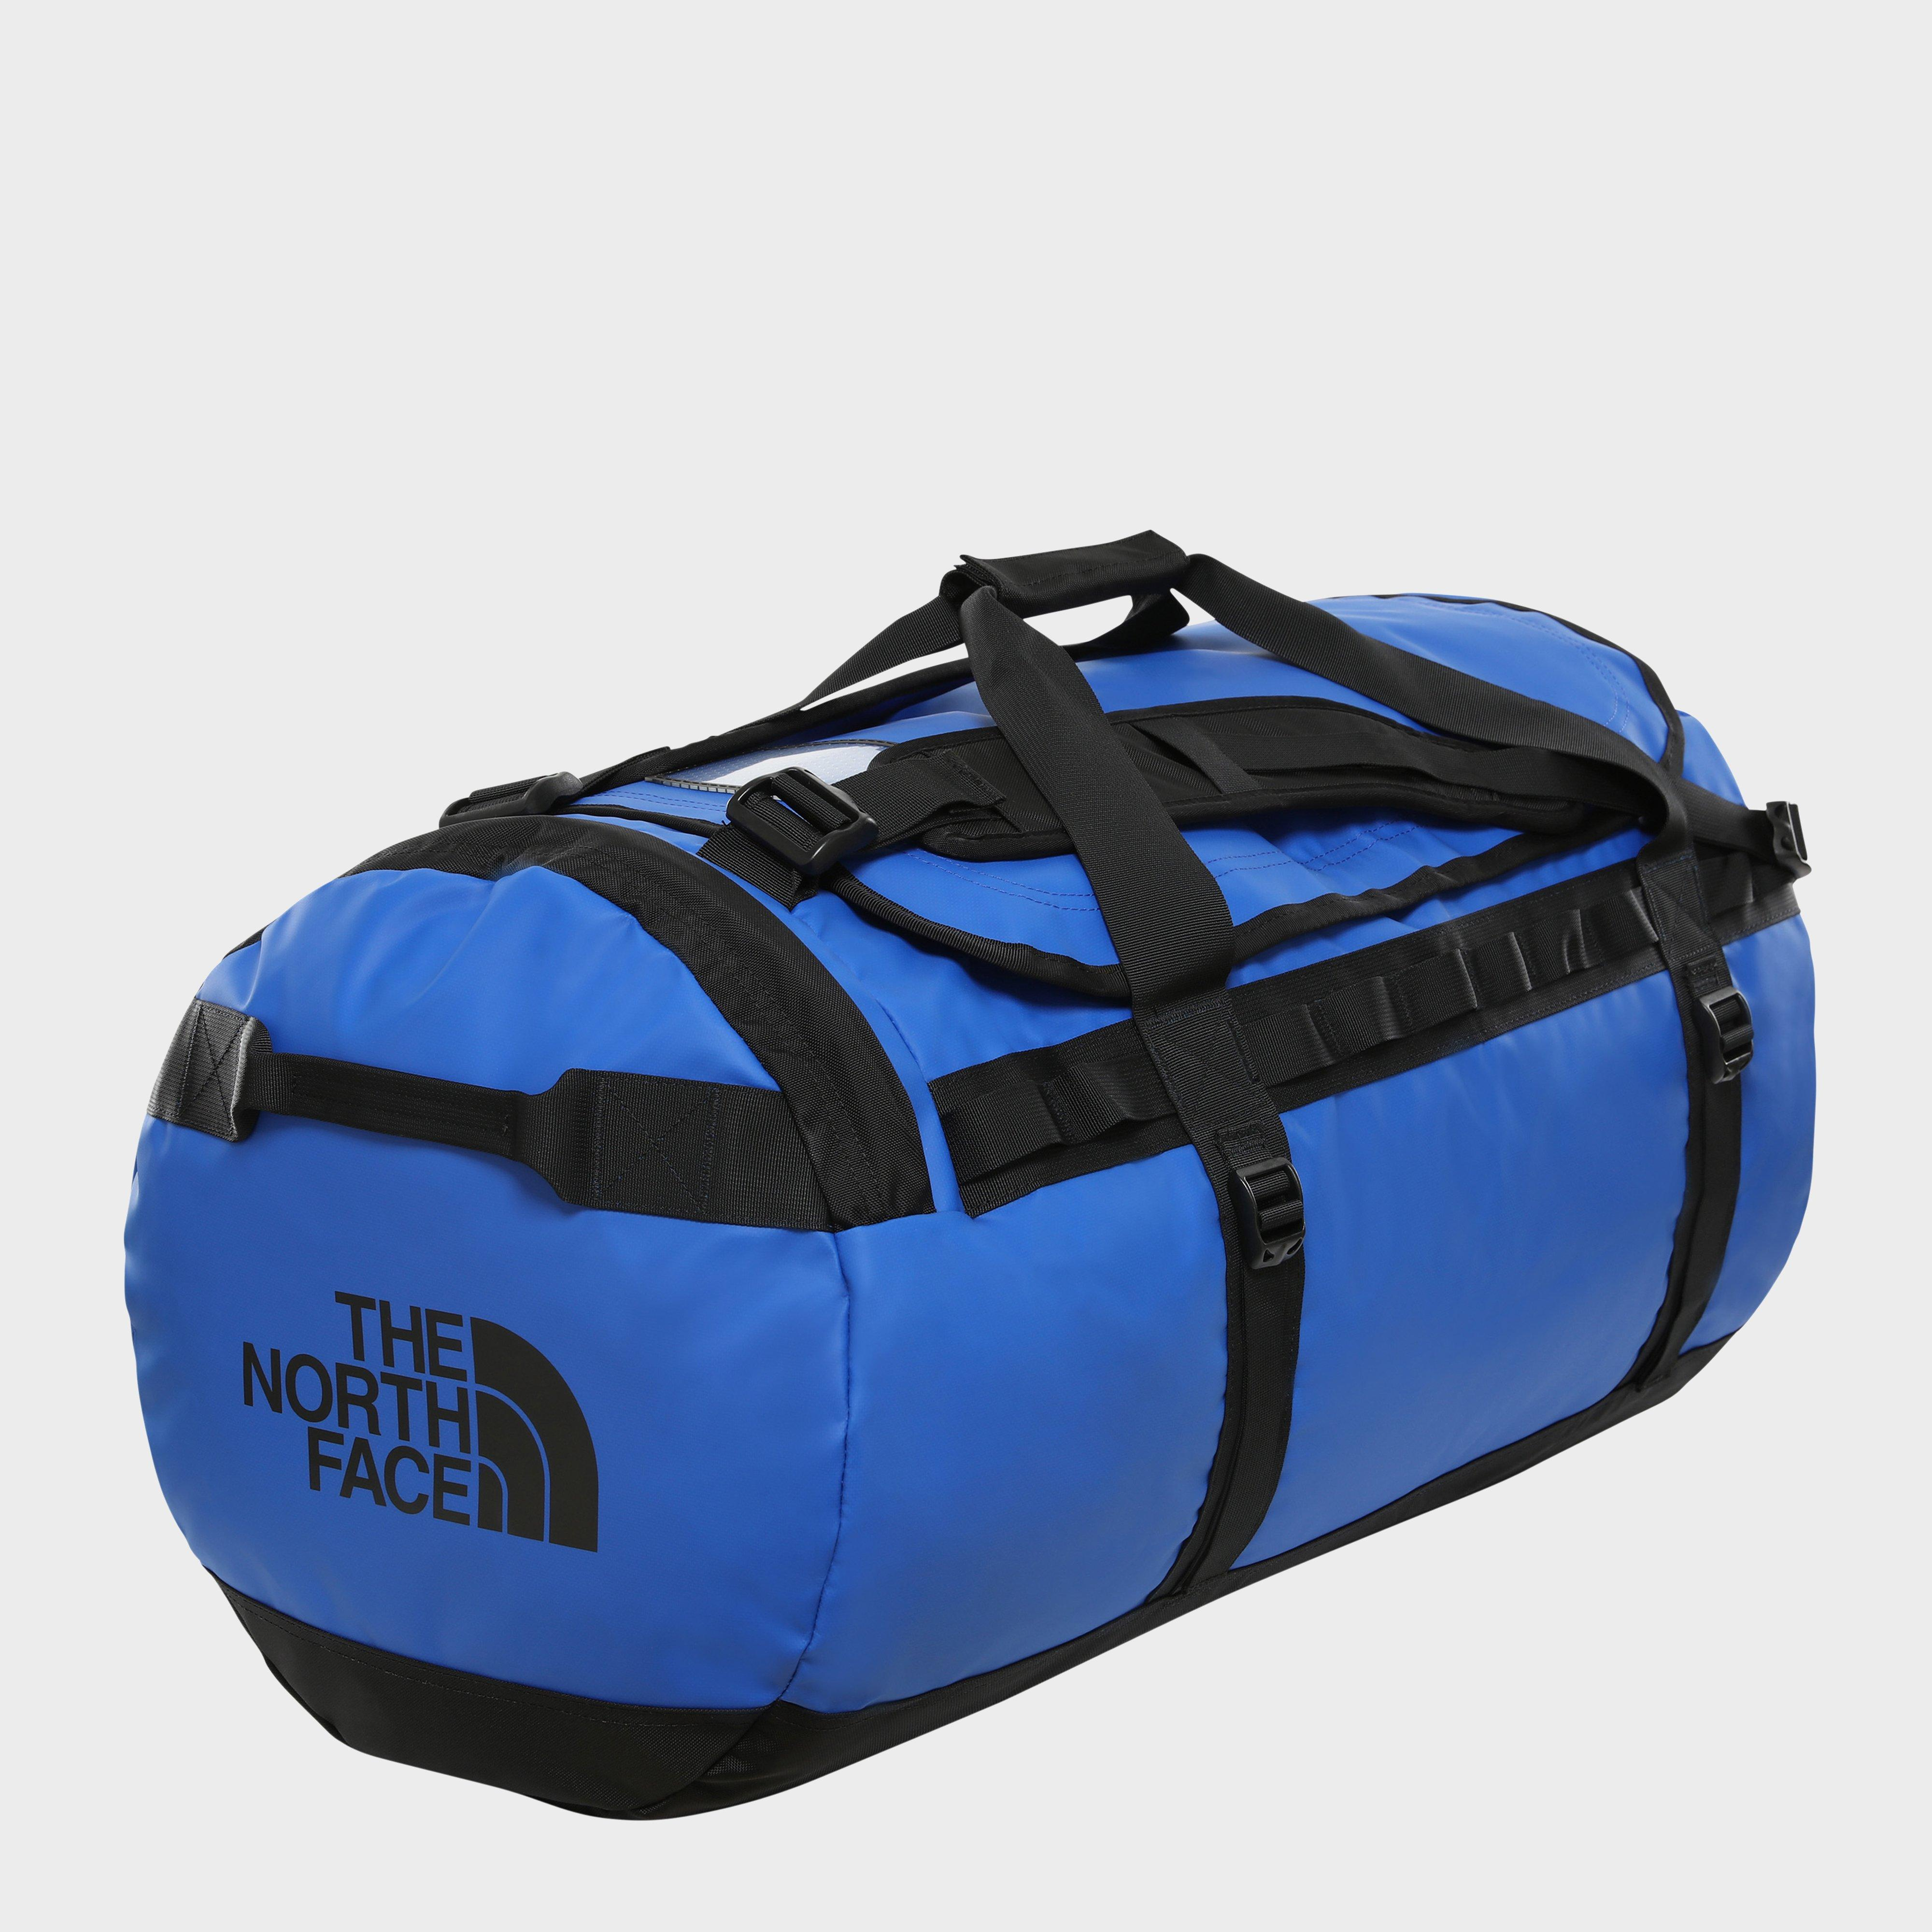 The North Face Base Camp Duffel Bag (Large), Blue